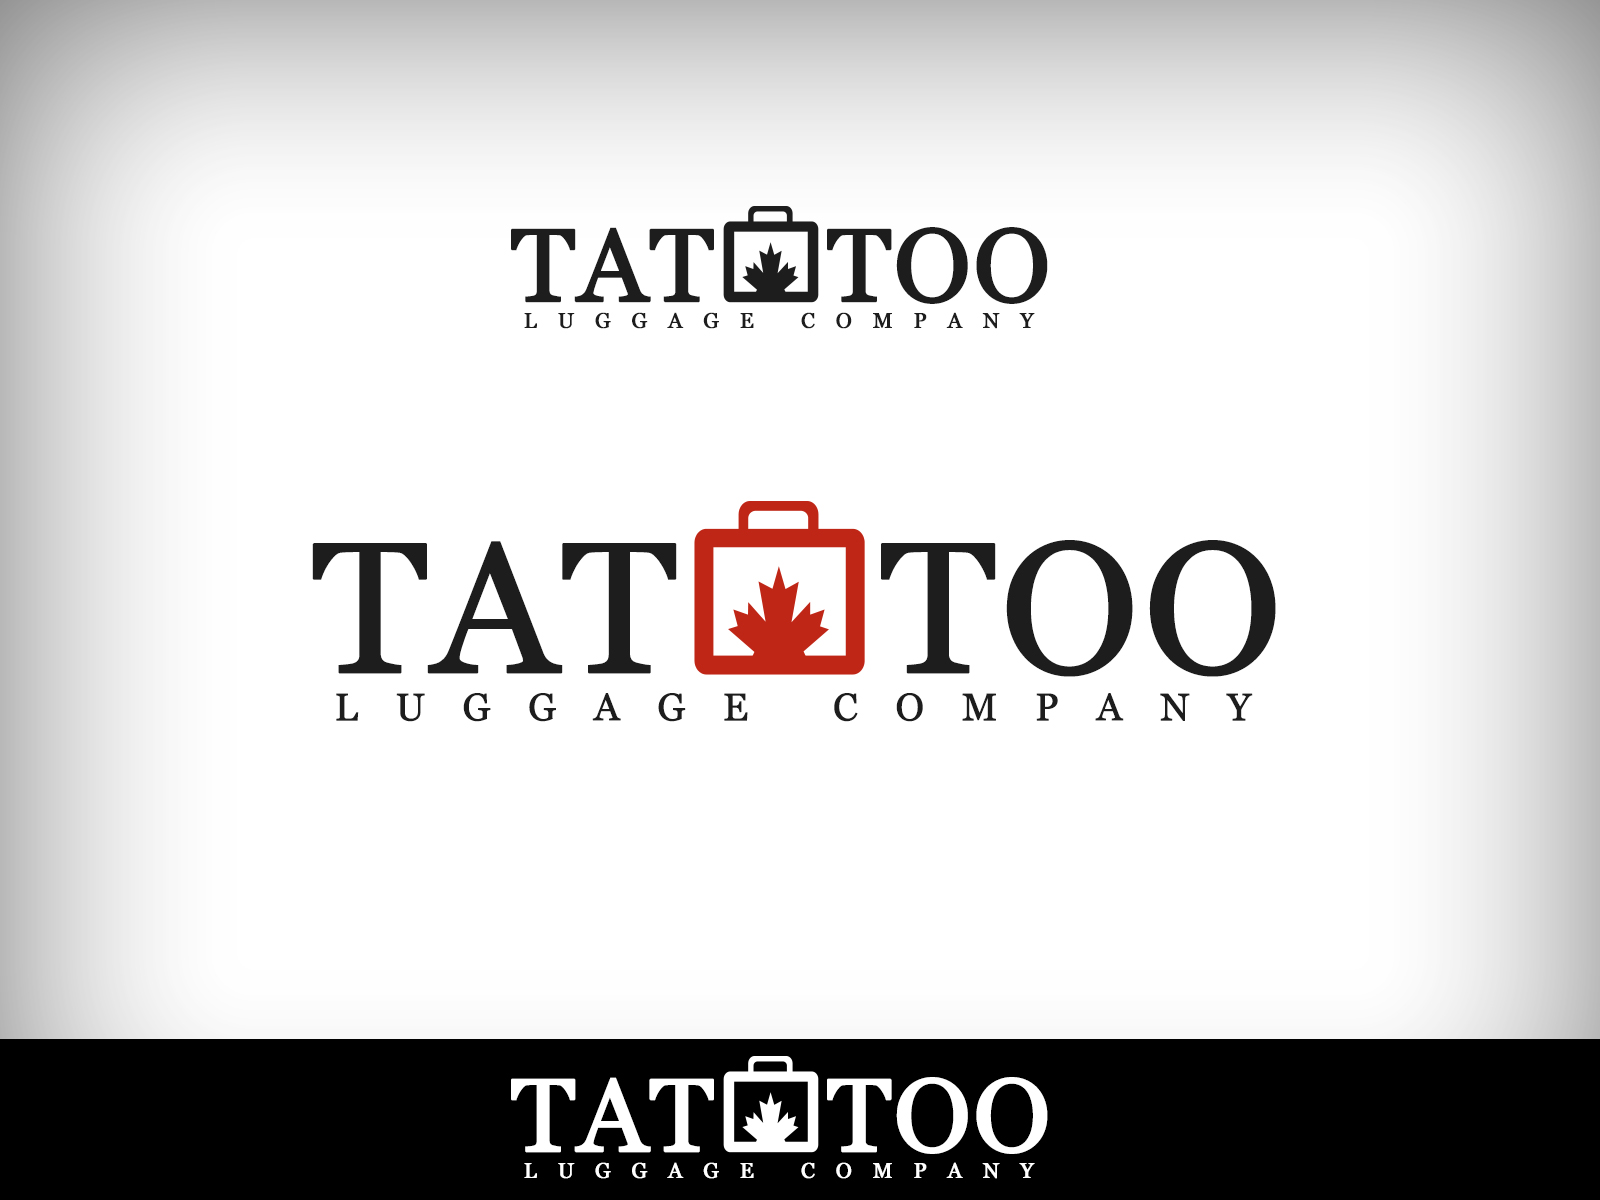 Logo Design by Virgilio Pineda III - Entry No. 181 in the Logo Design Contest Artistic Logo Design for Tattoo Luggage Company.